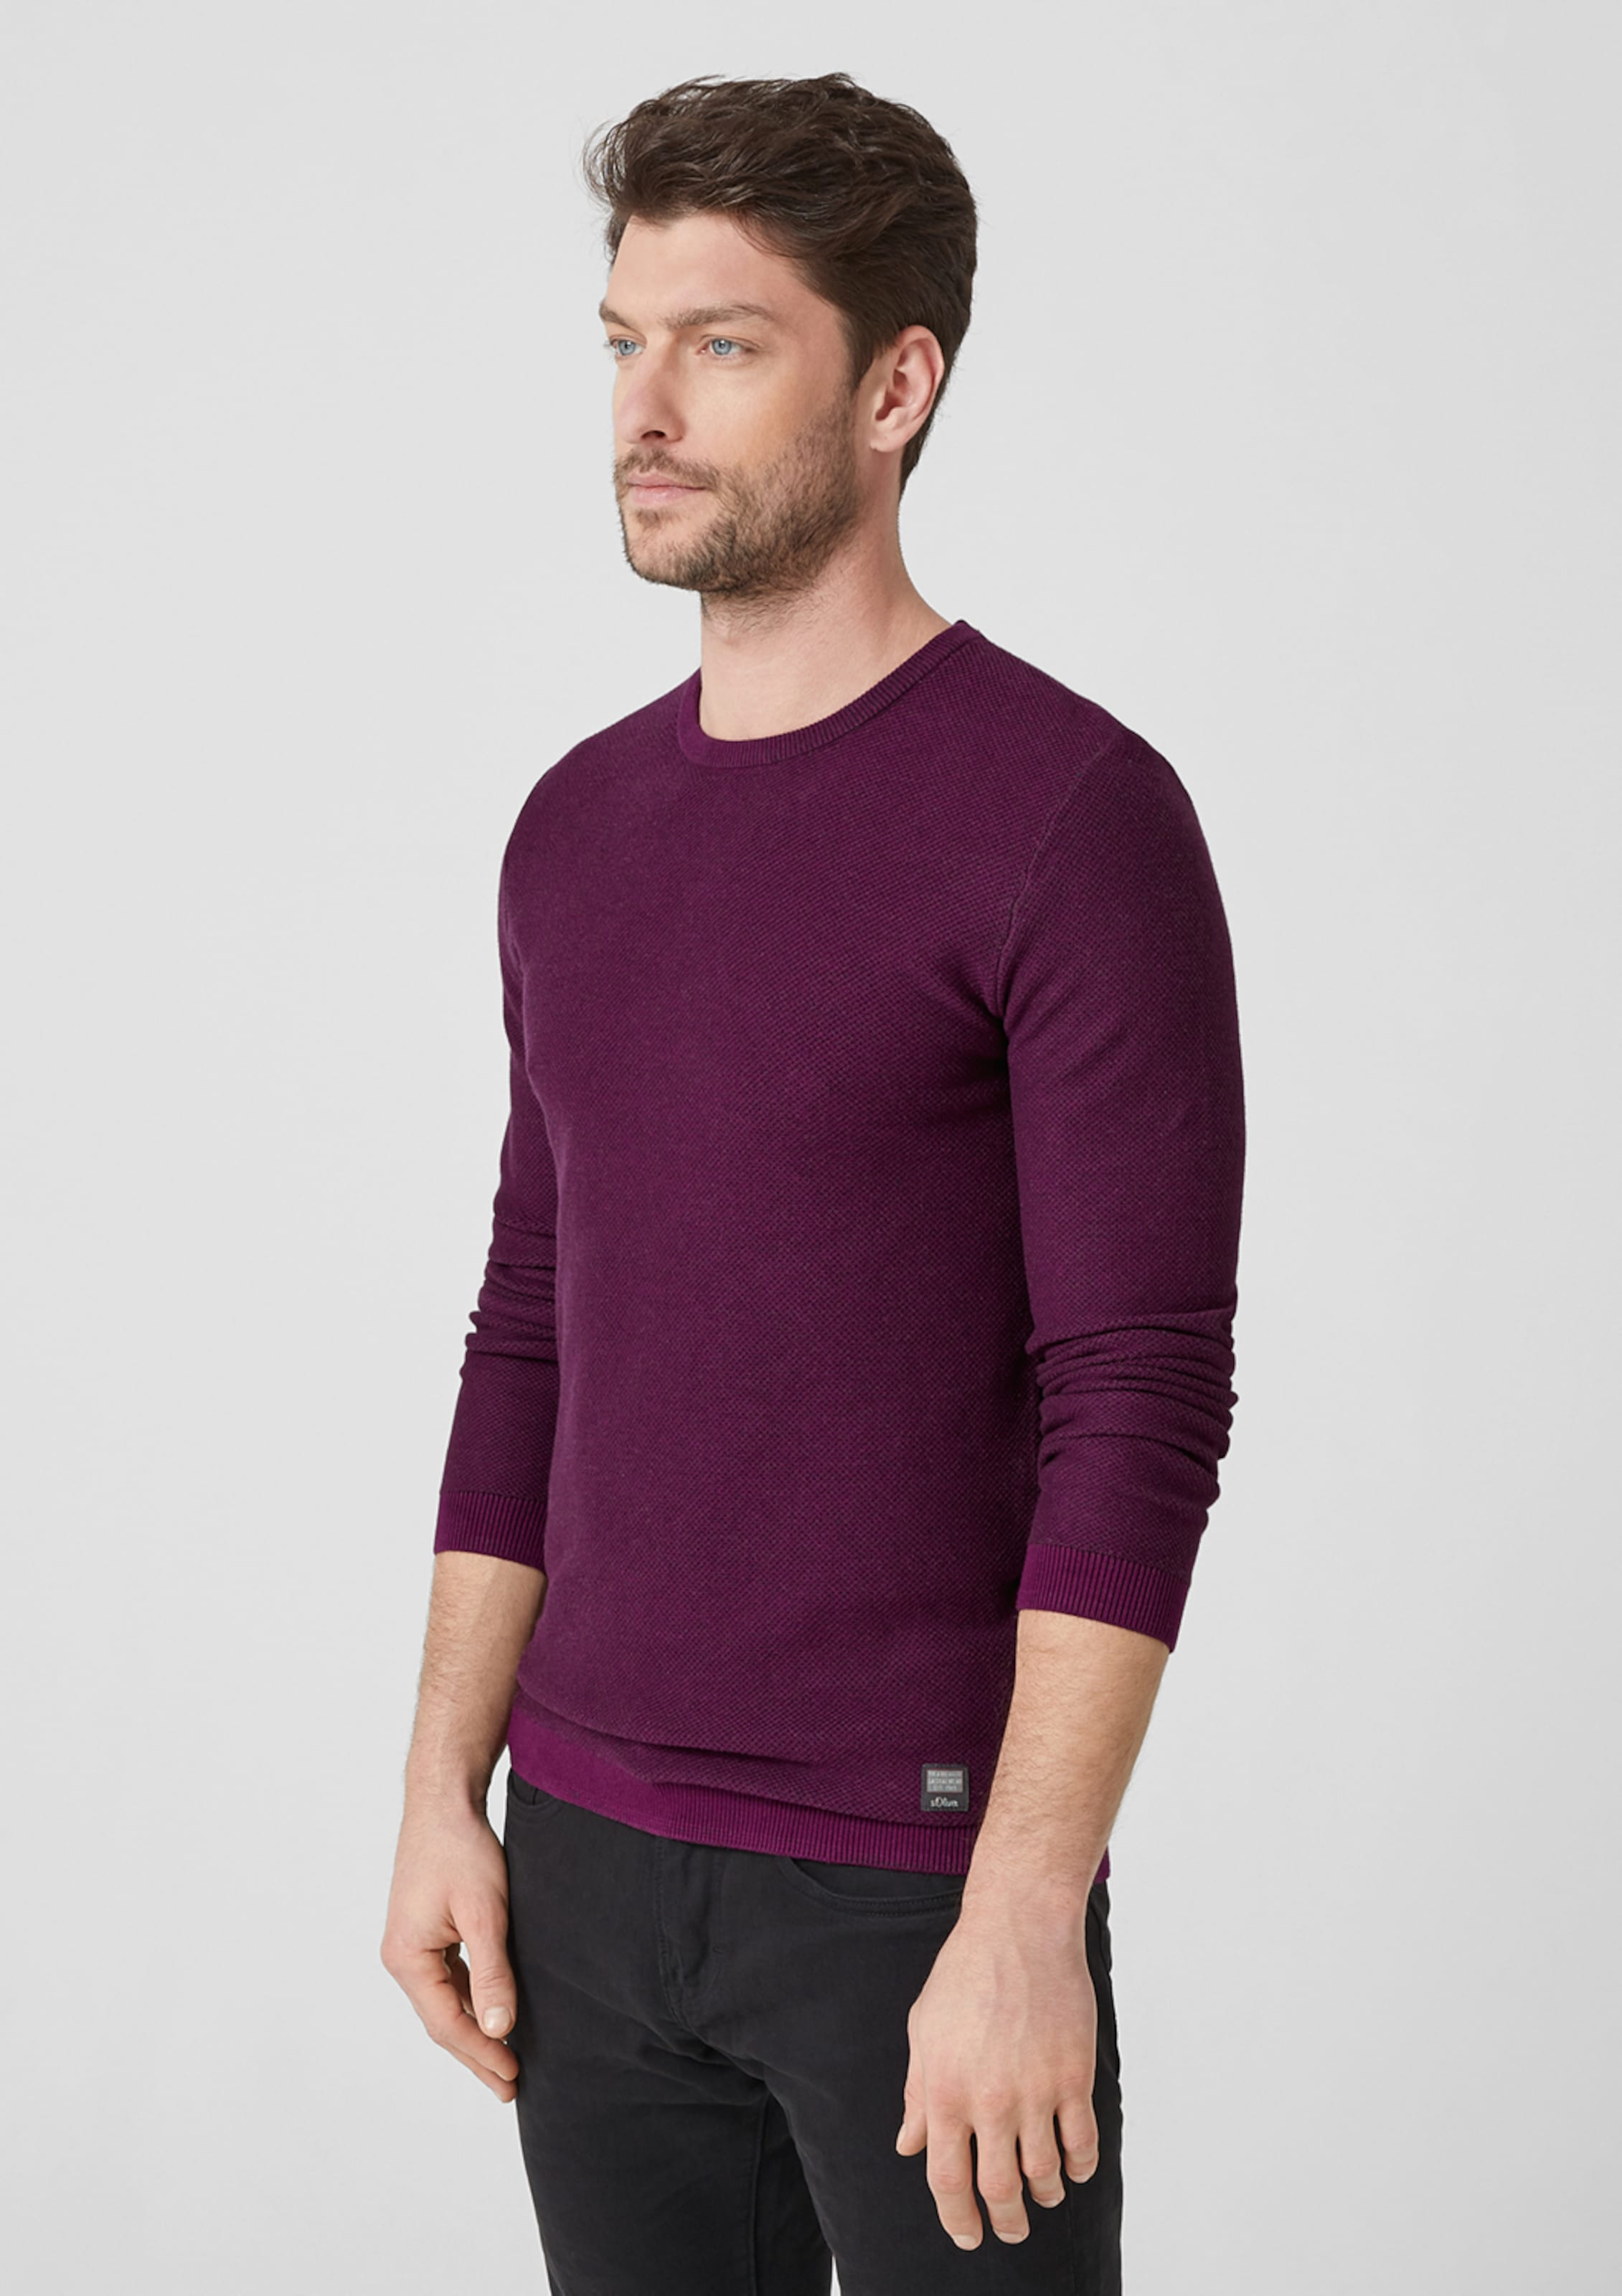 S In Red Label oliver Pullover Beere kXiPZOuT